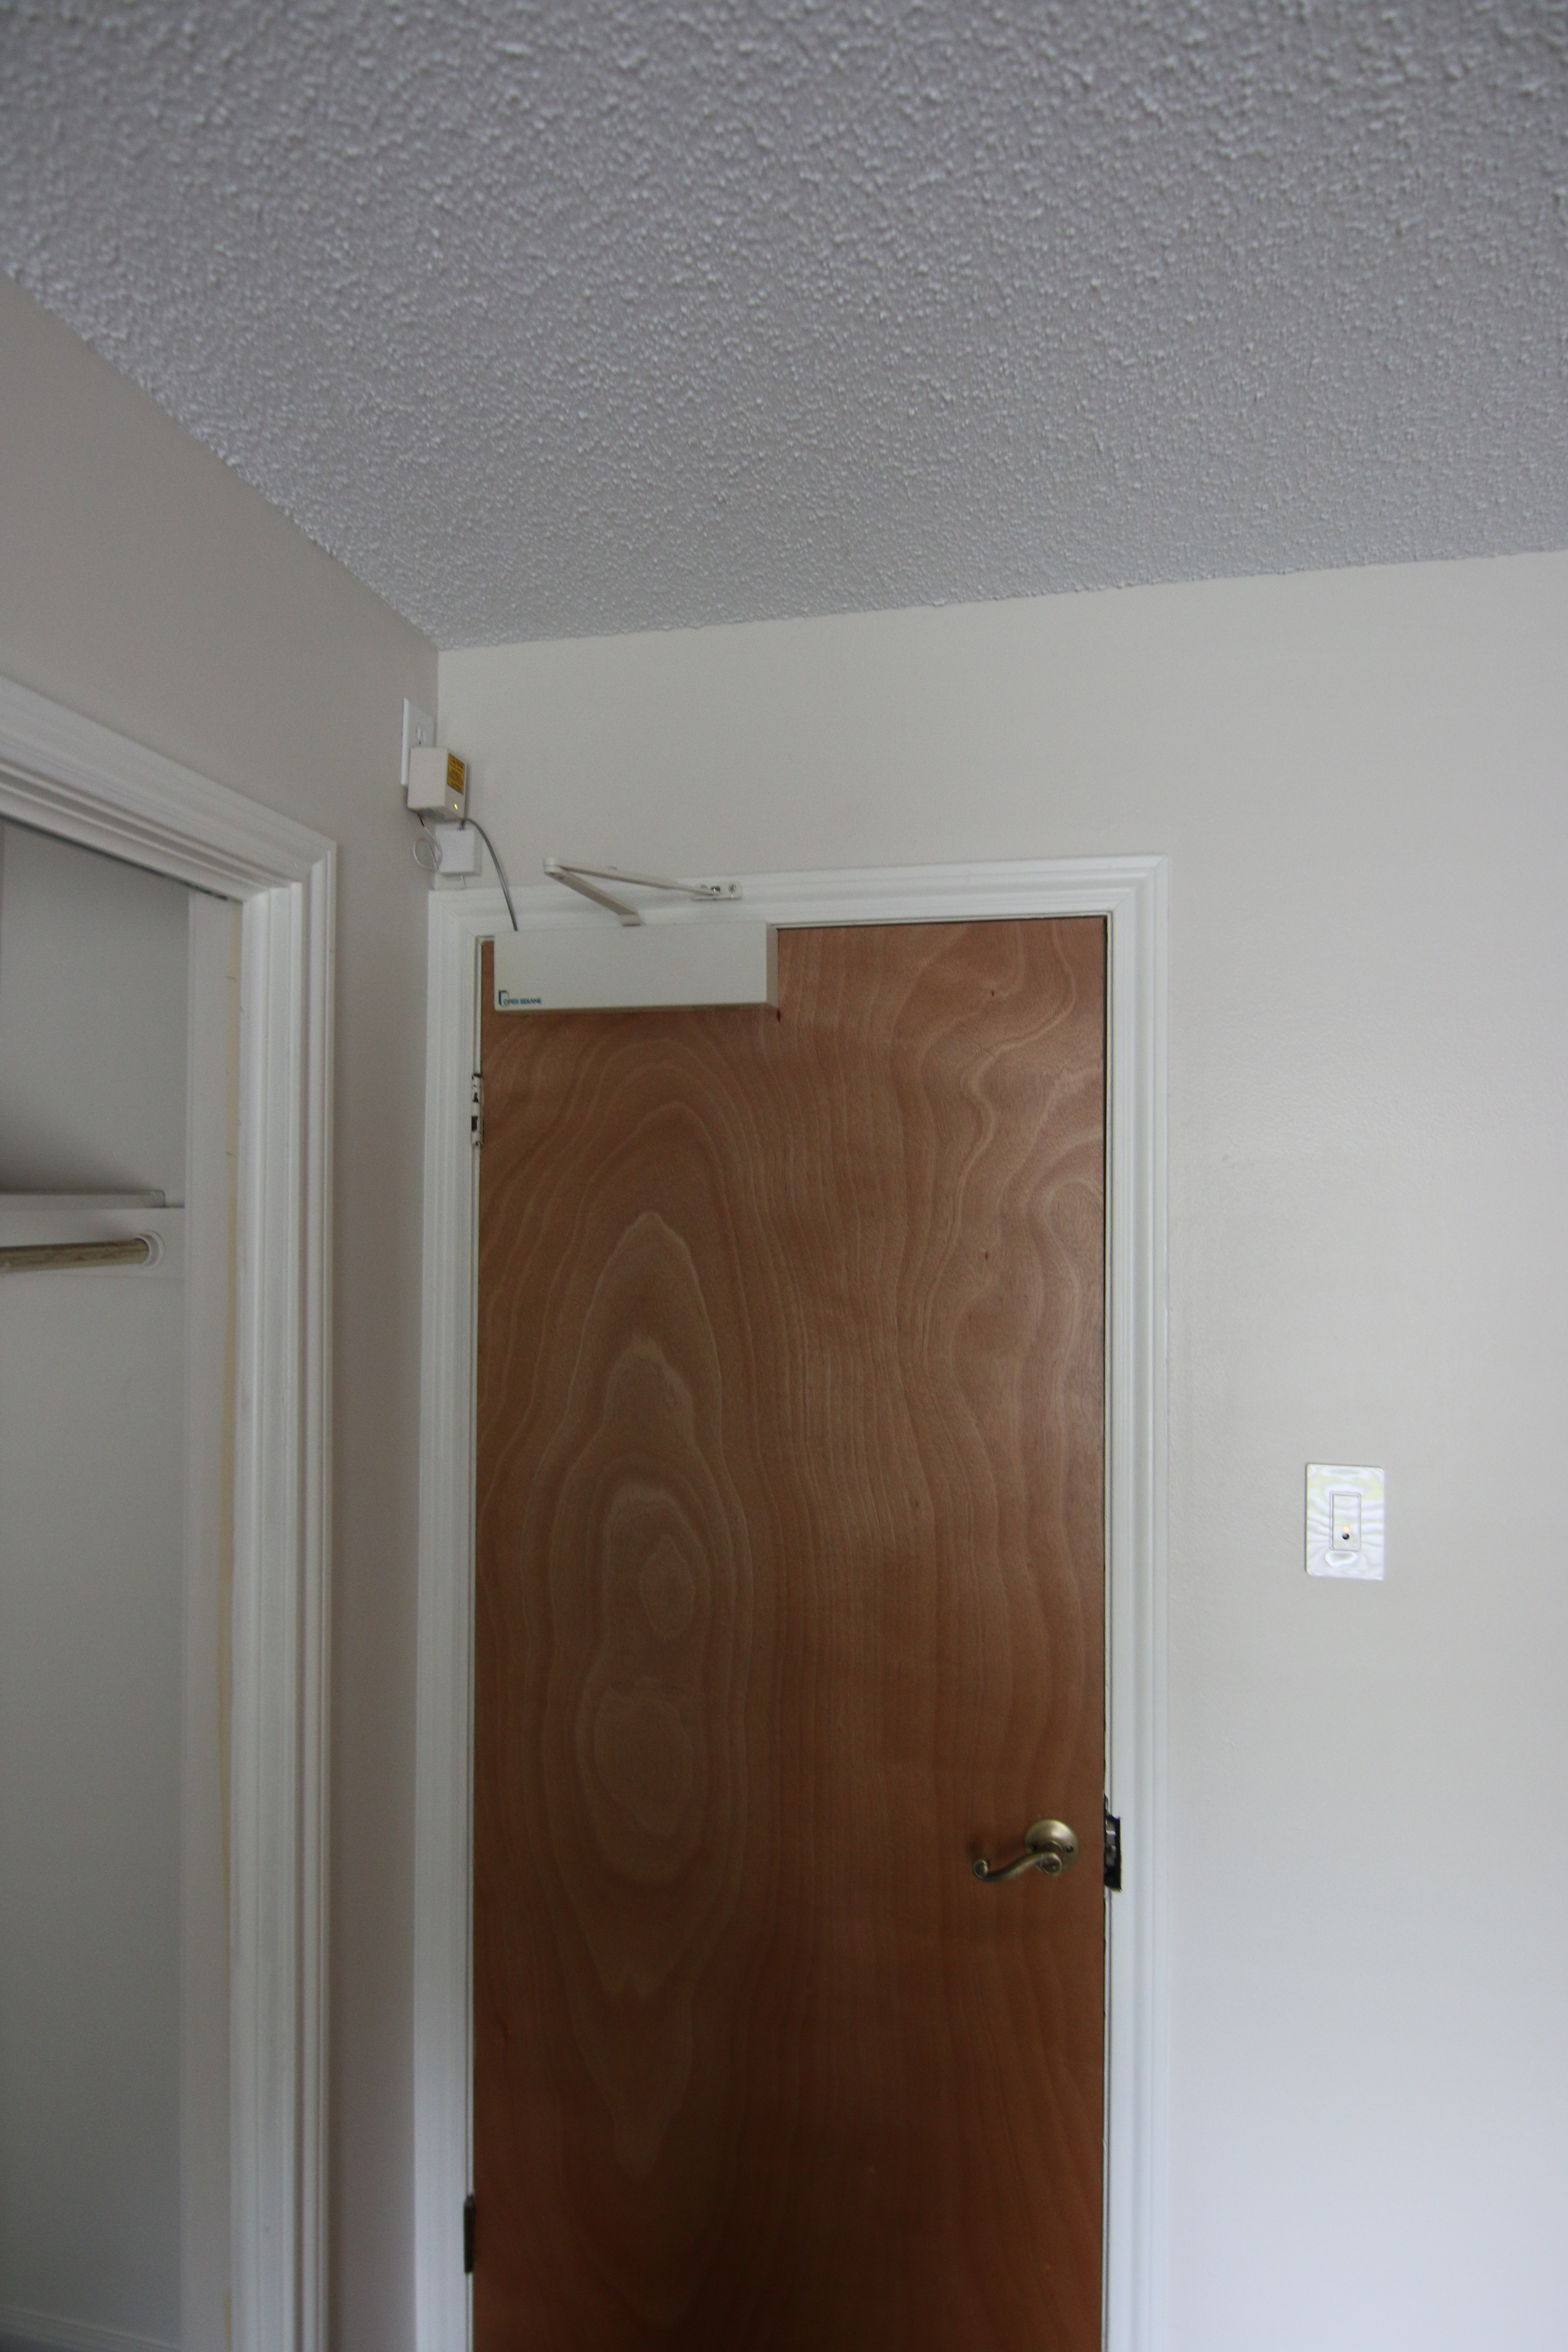 Automated Door Openers And Light Switches For Aging In Place In Austin